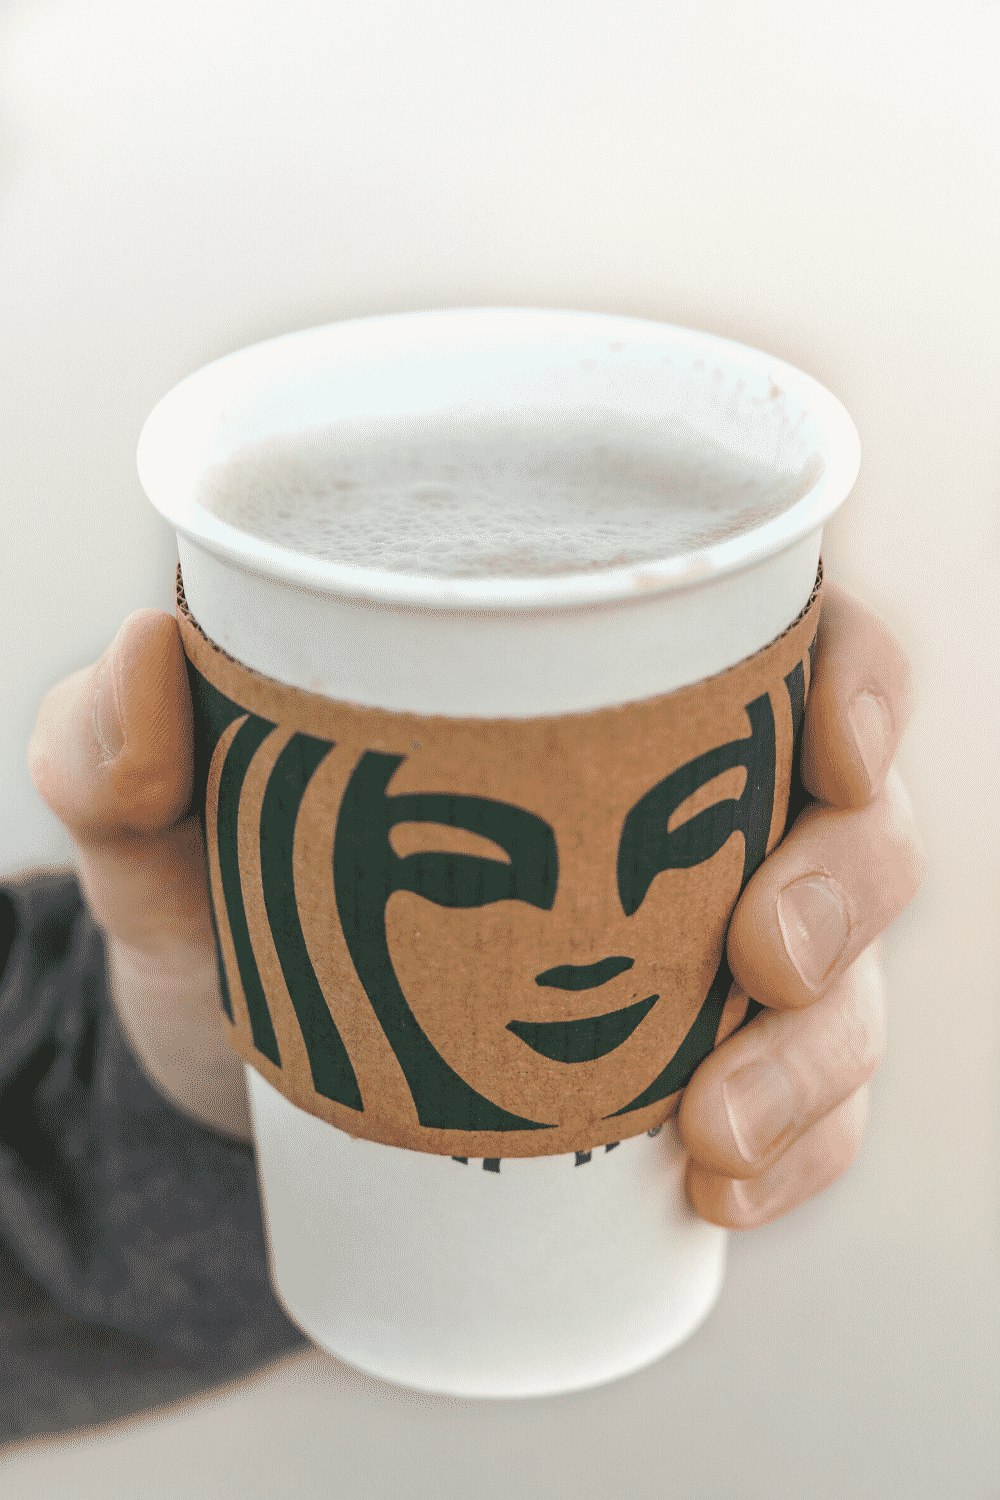 A hand holding a cup of Starbucks caffe Misto